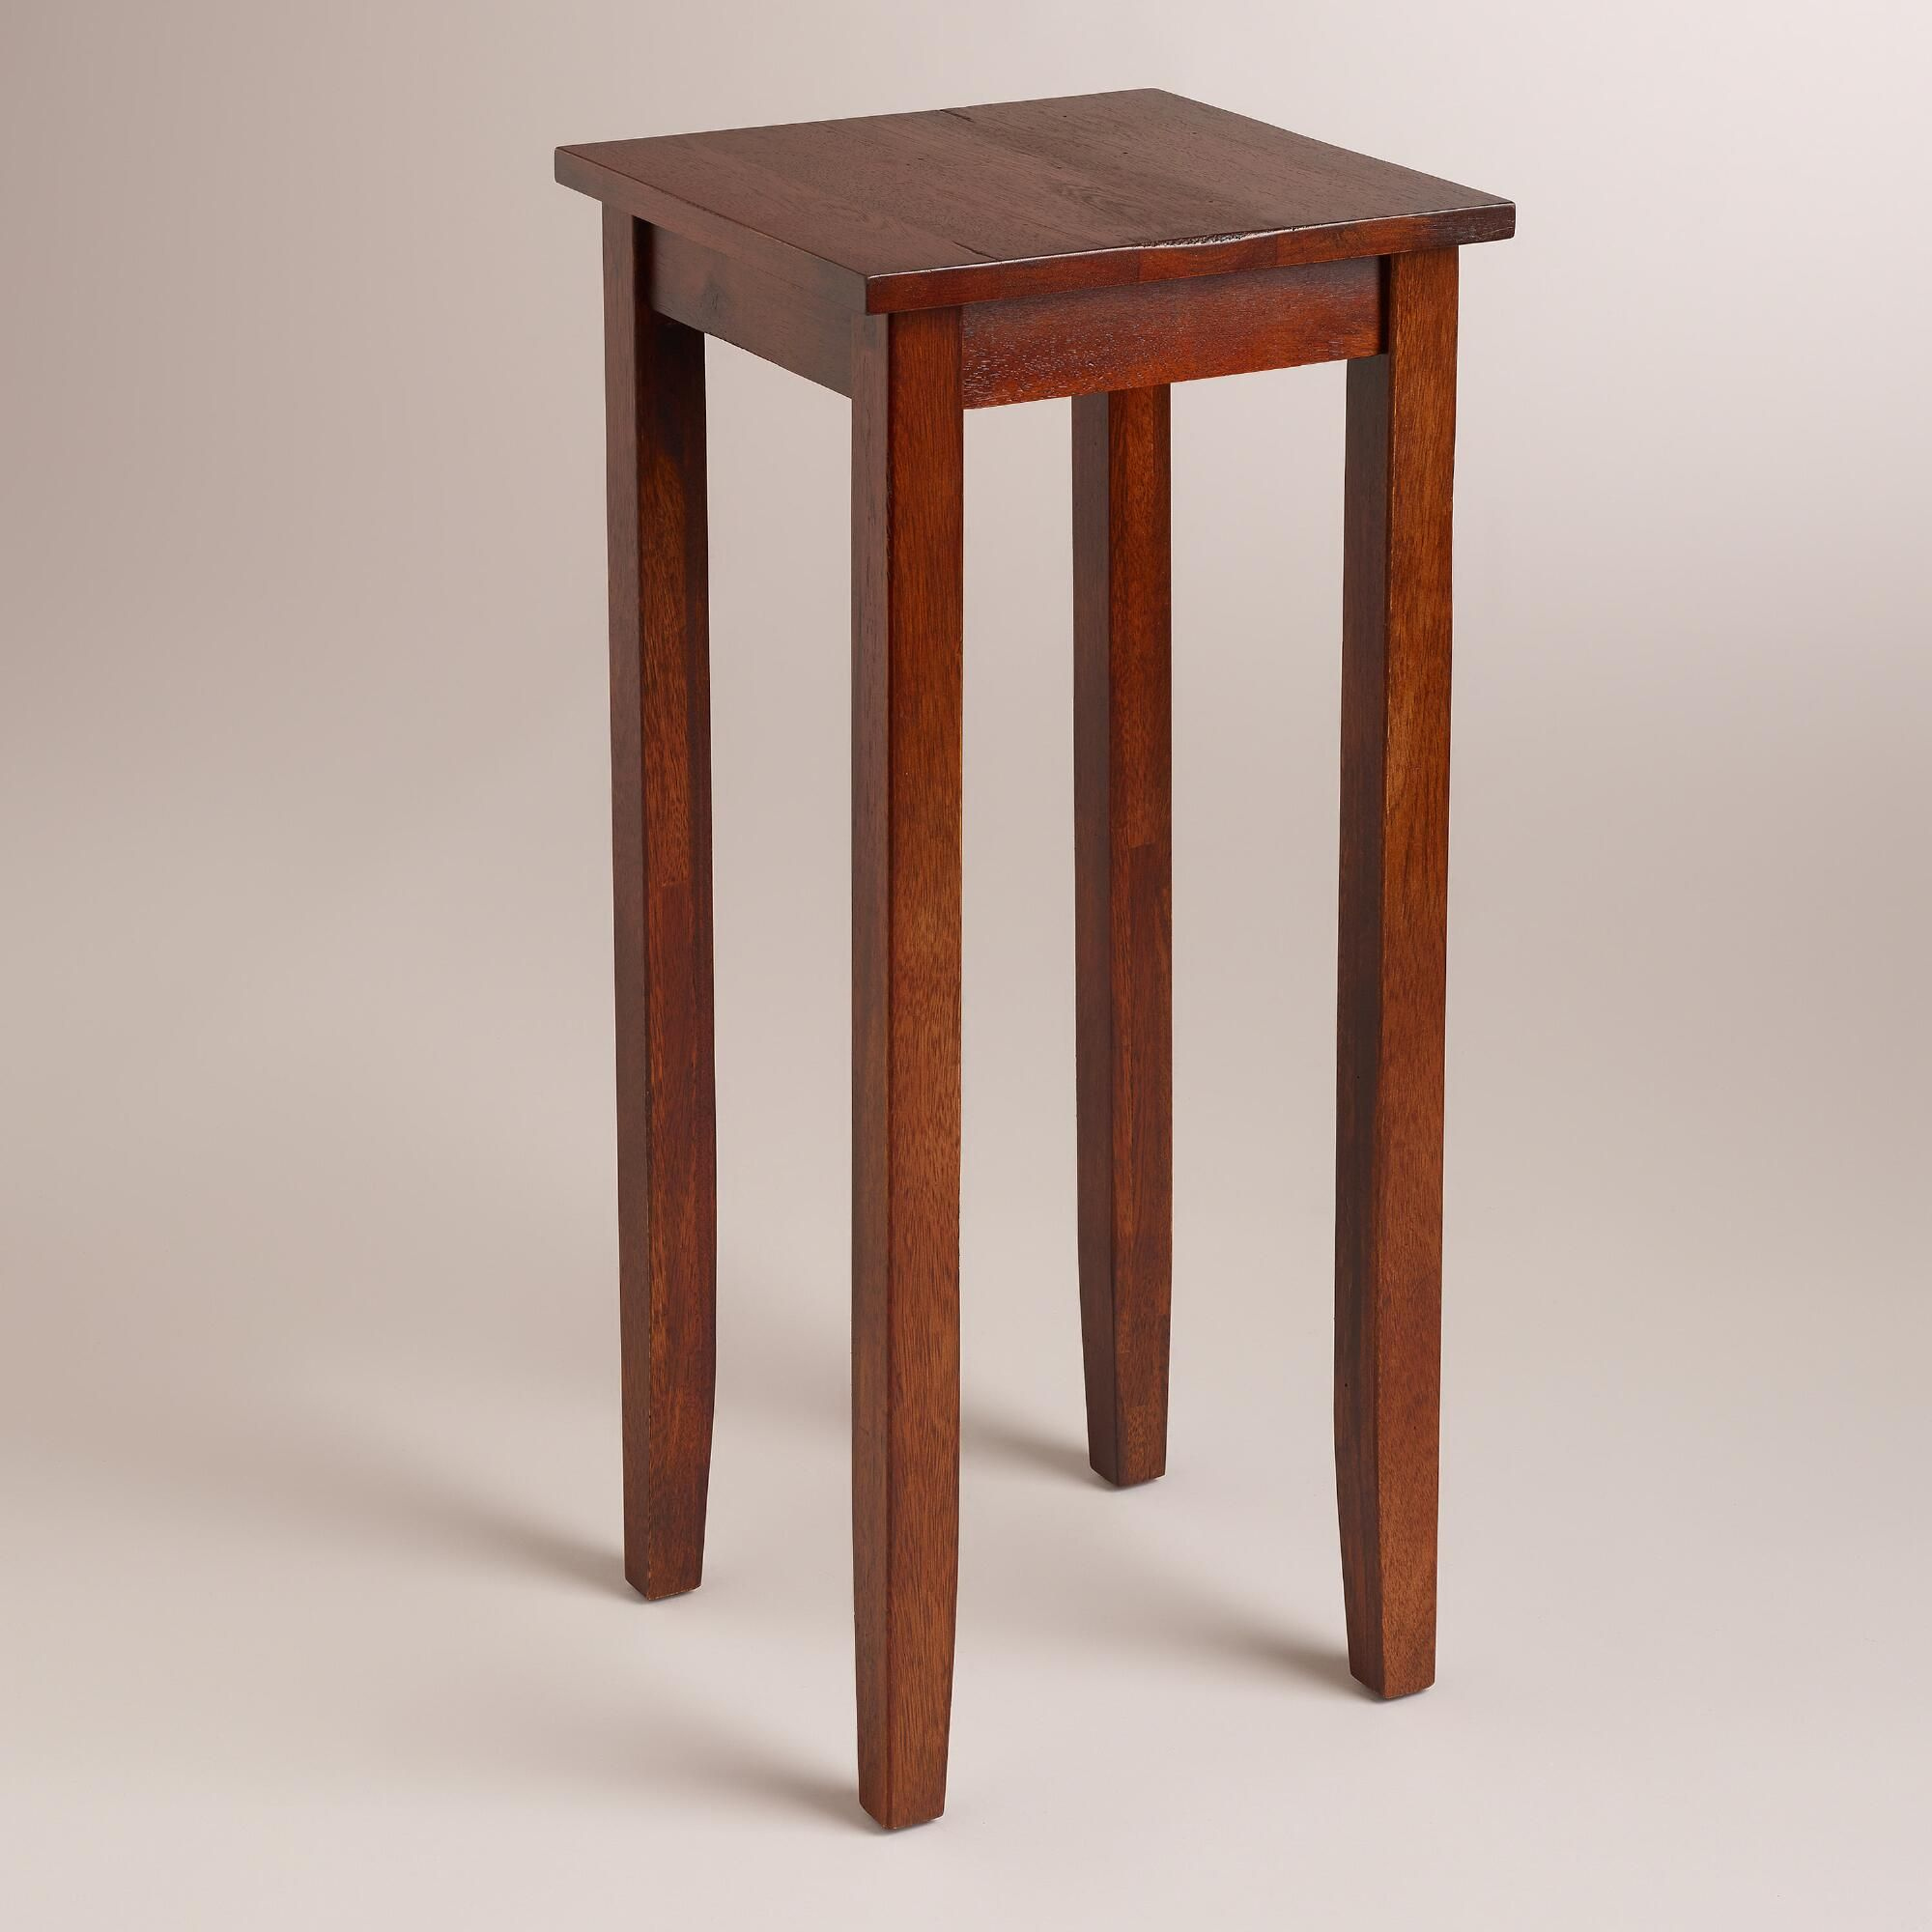 tall chloe accent table brown wood mahogany world market corner our side for any room the house oak and glass bunnings swing chair sliding barn door dining inch round tibetan drum